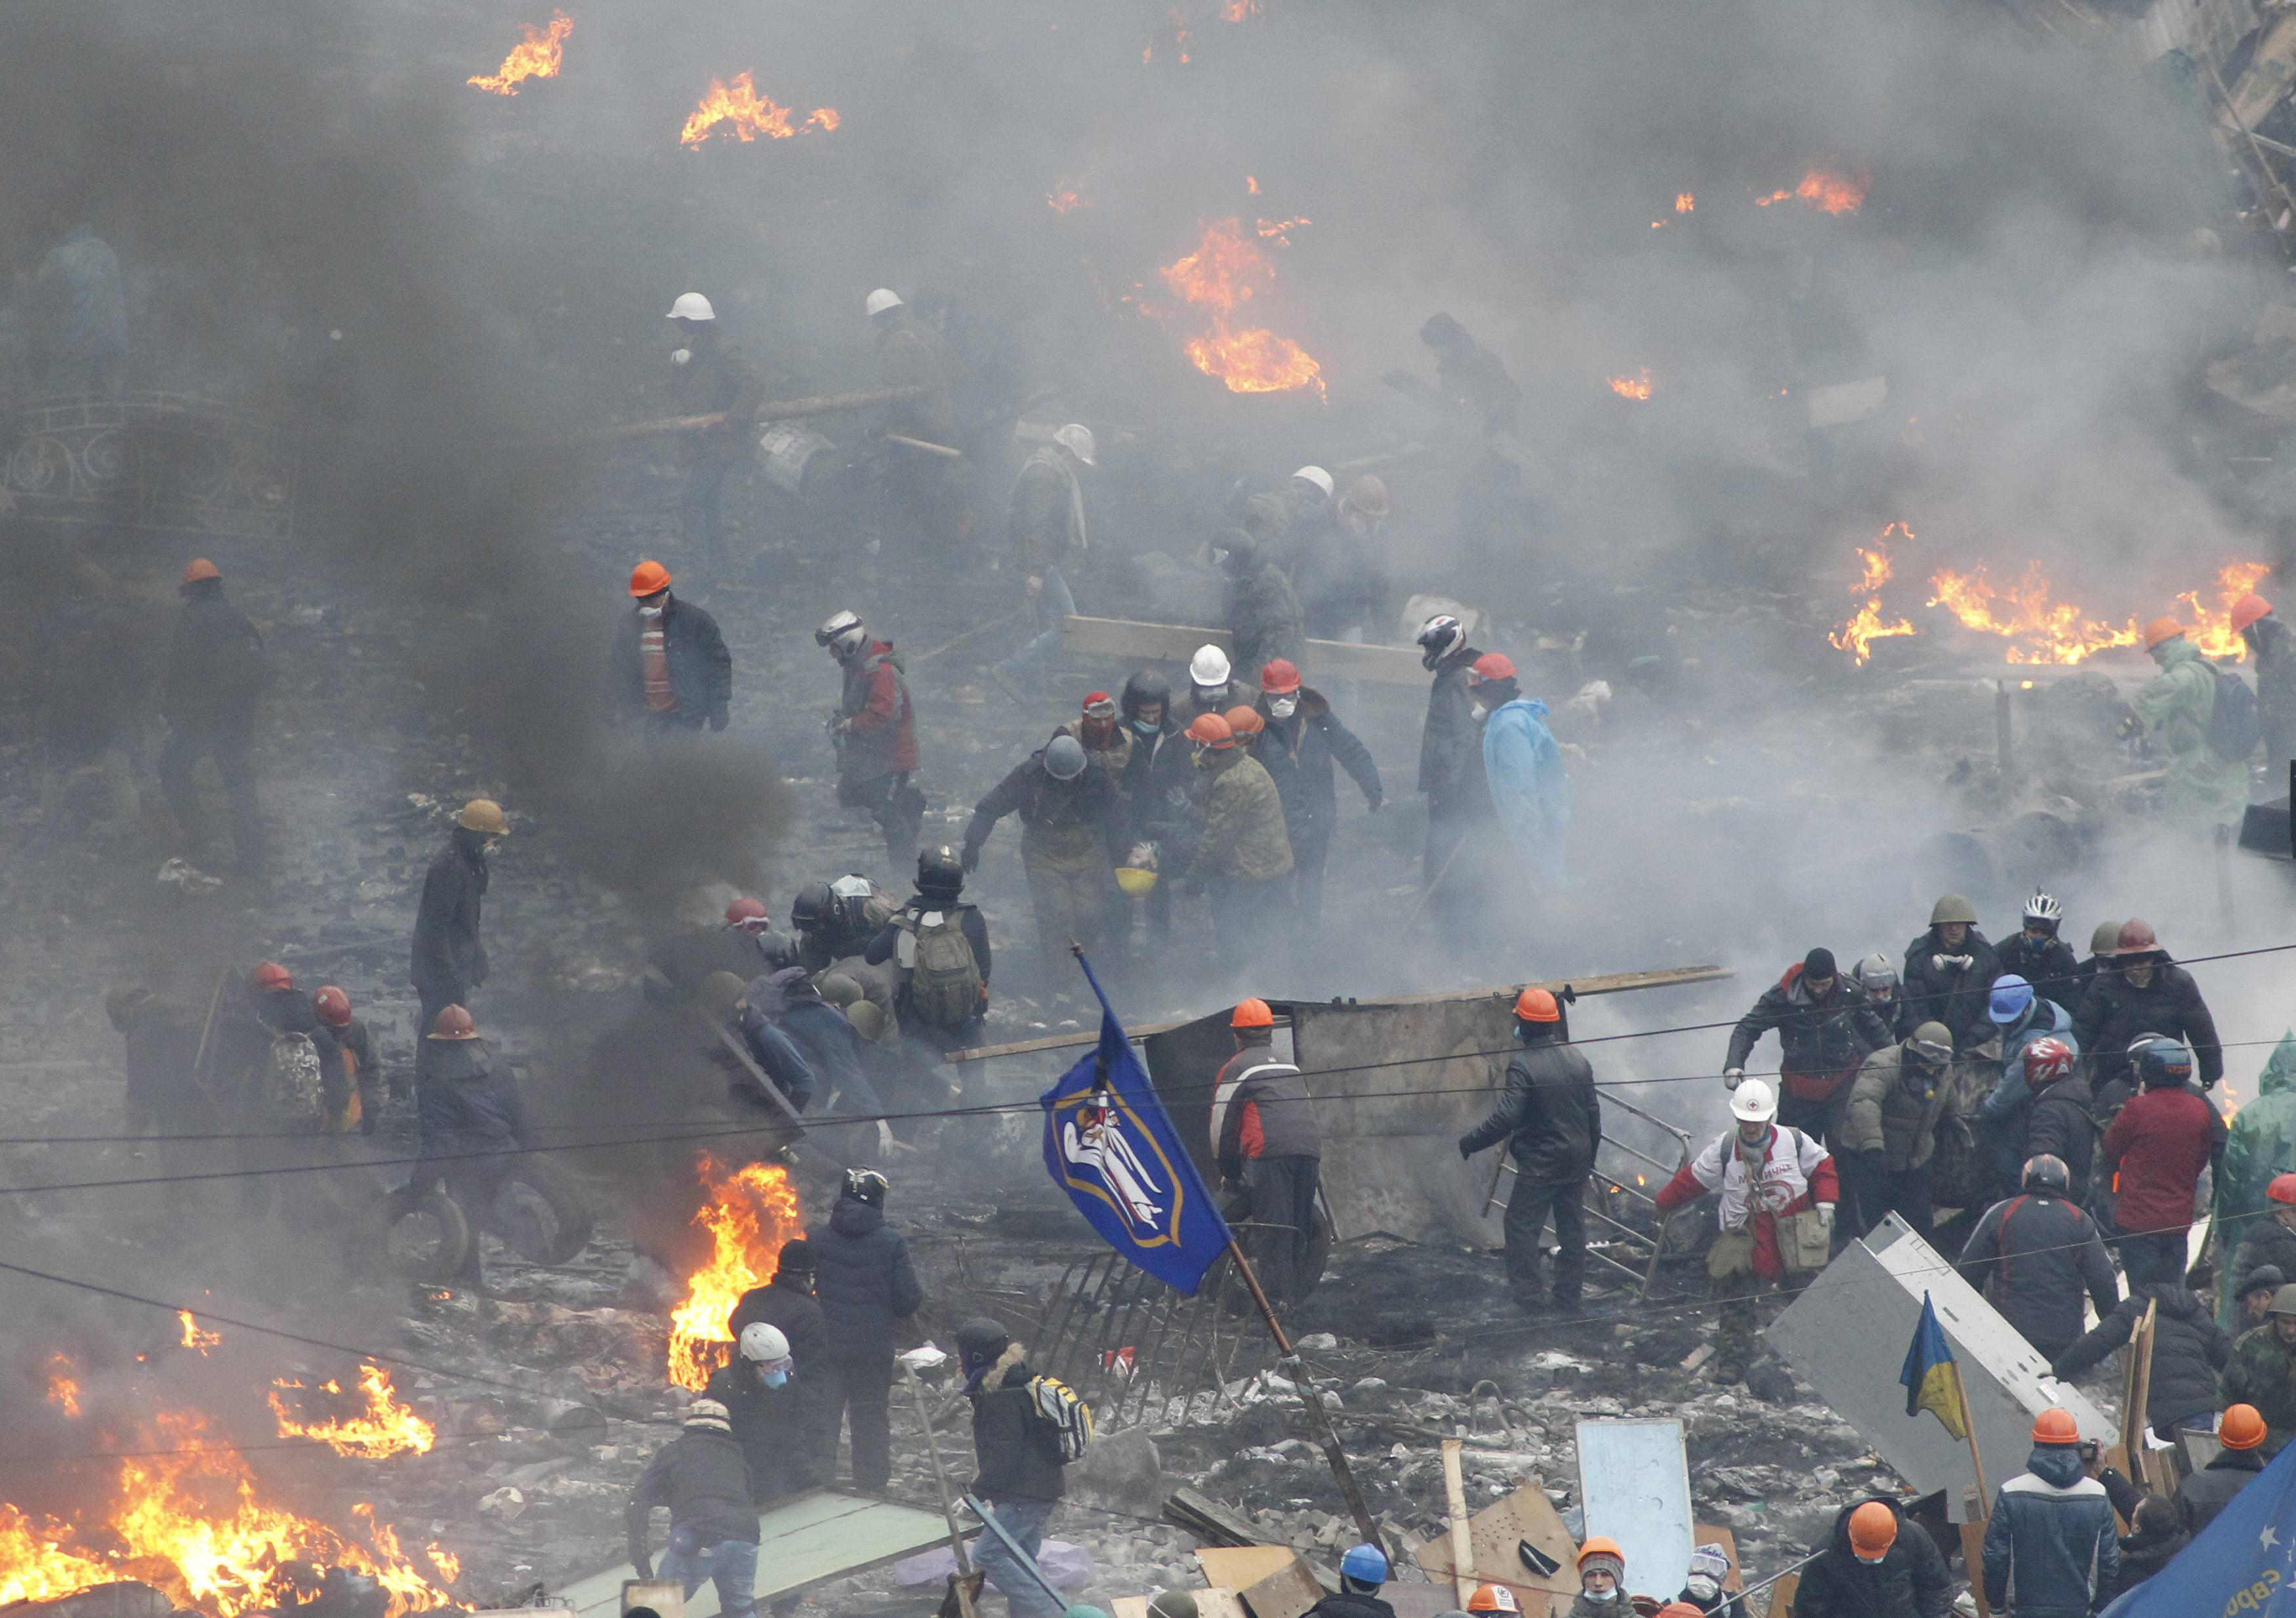 Anti-government protesters carry an injured man on a stretcher in    Ukraine Revolution Fire